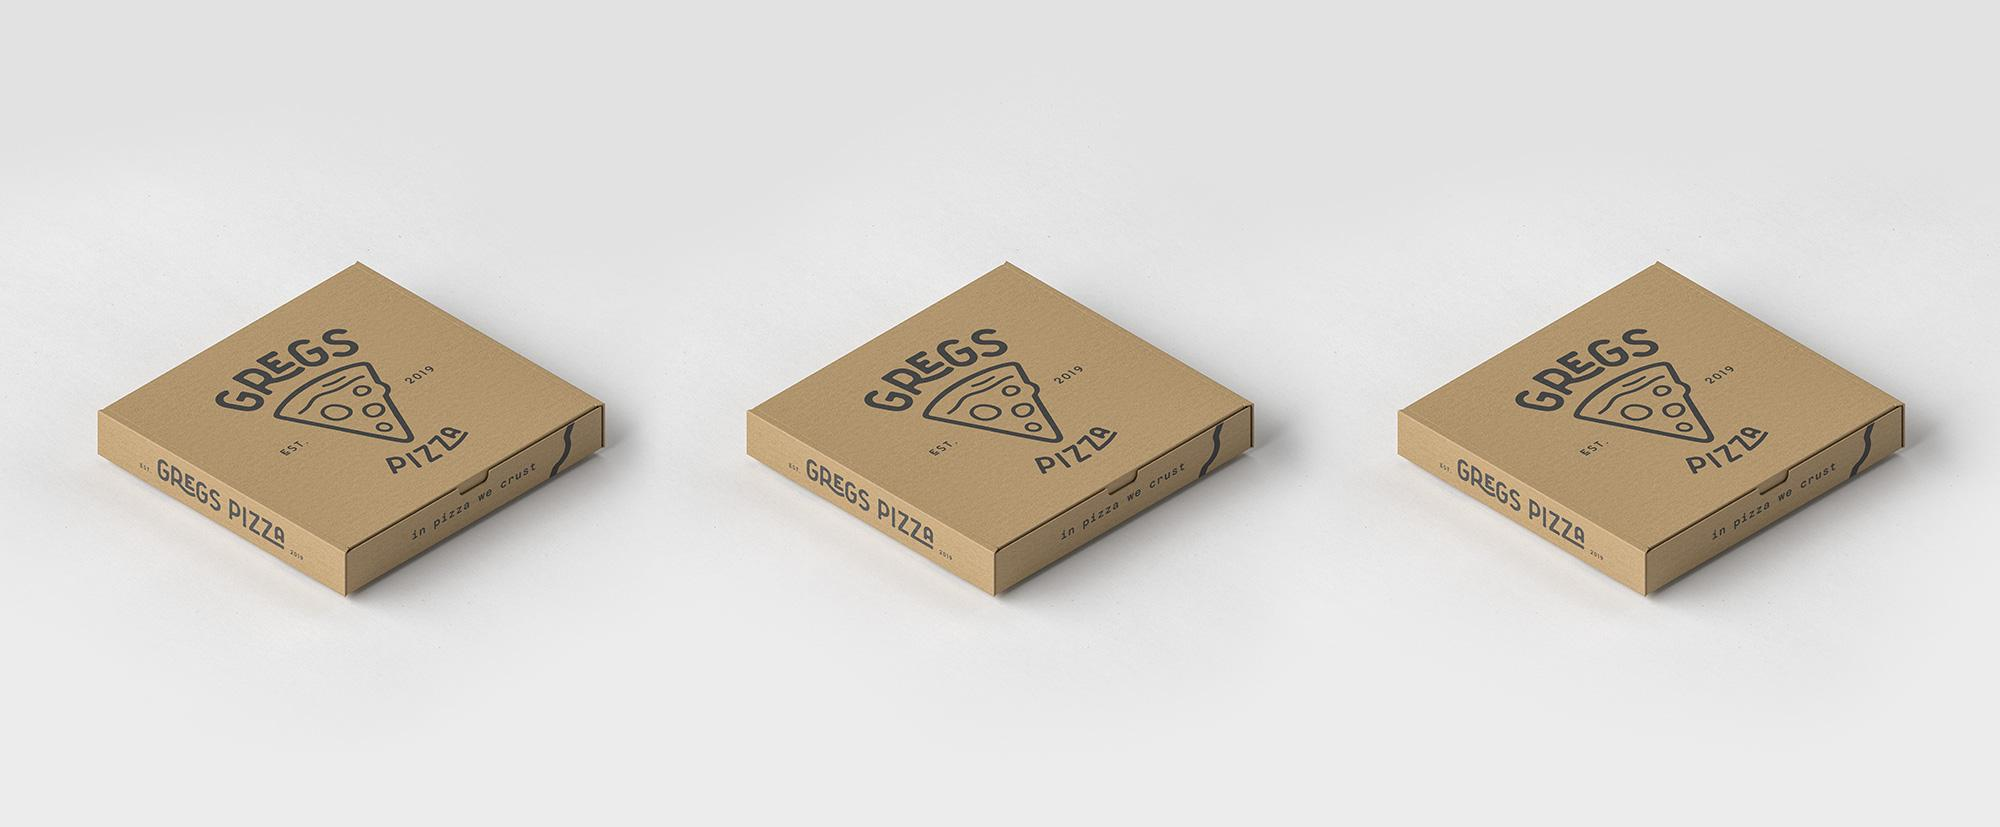 Gregs Pizza Boxes